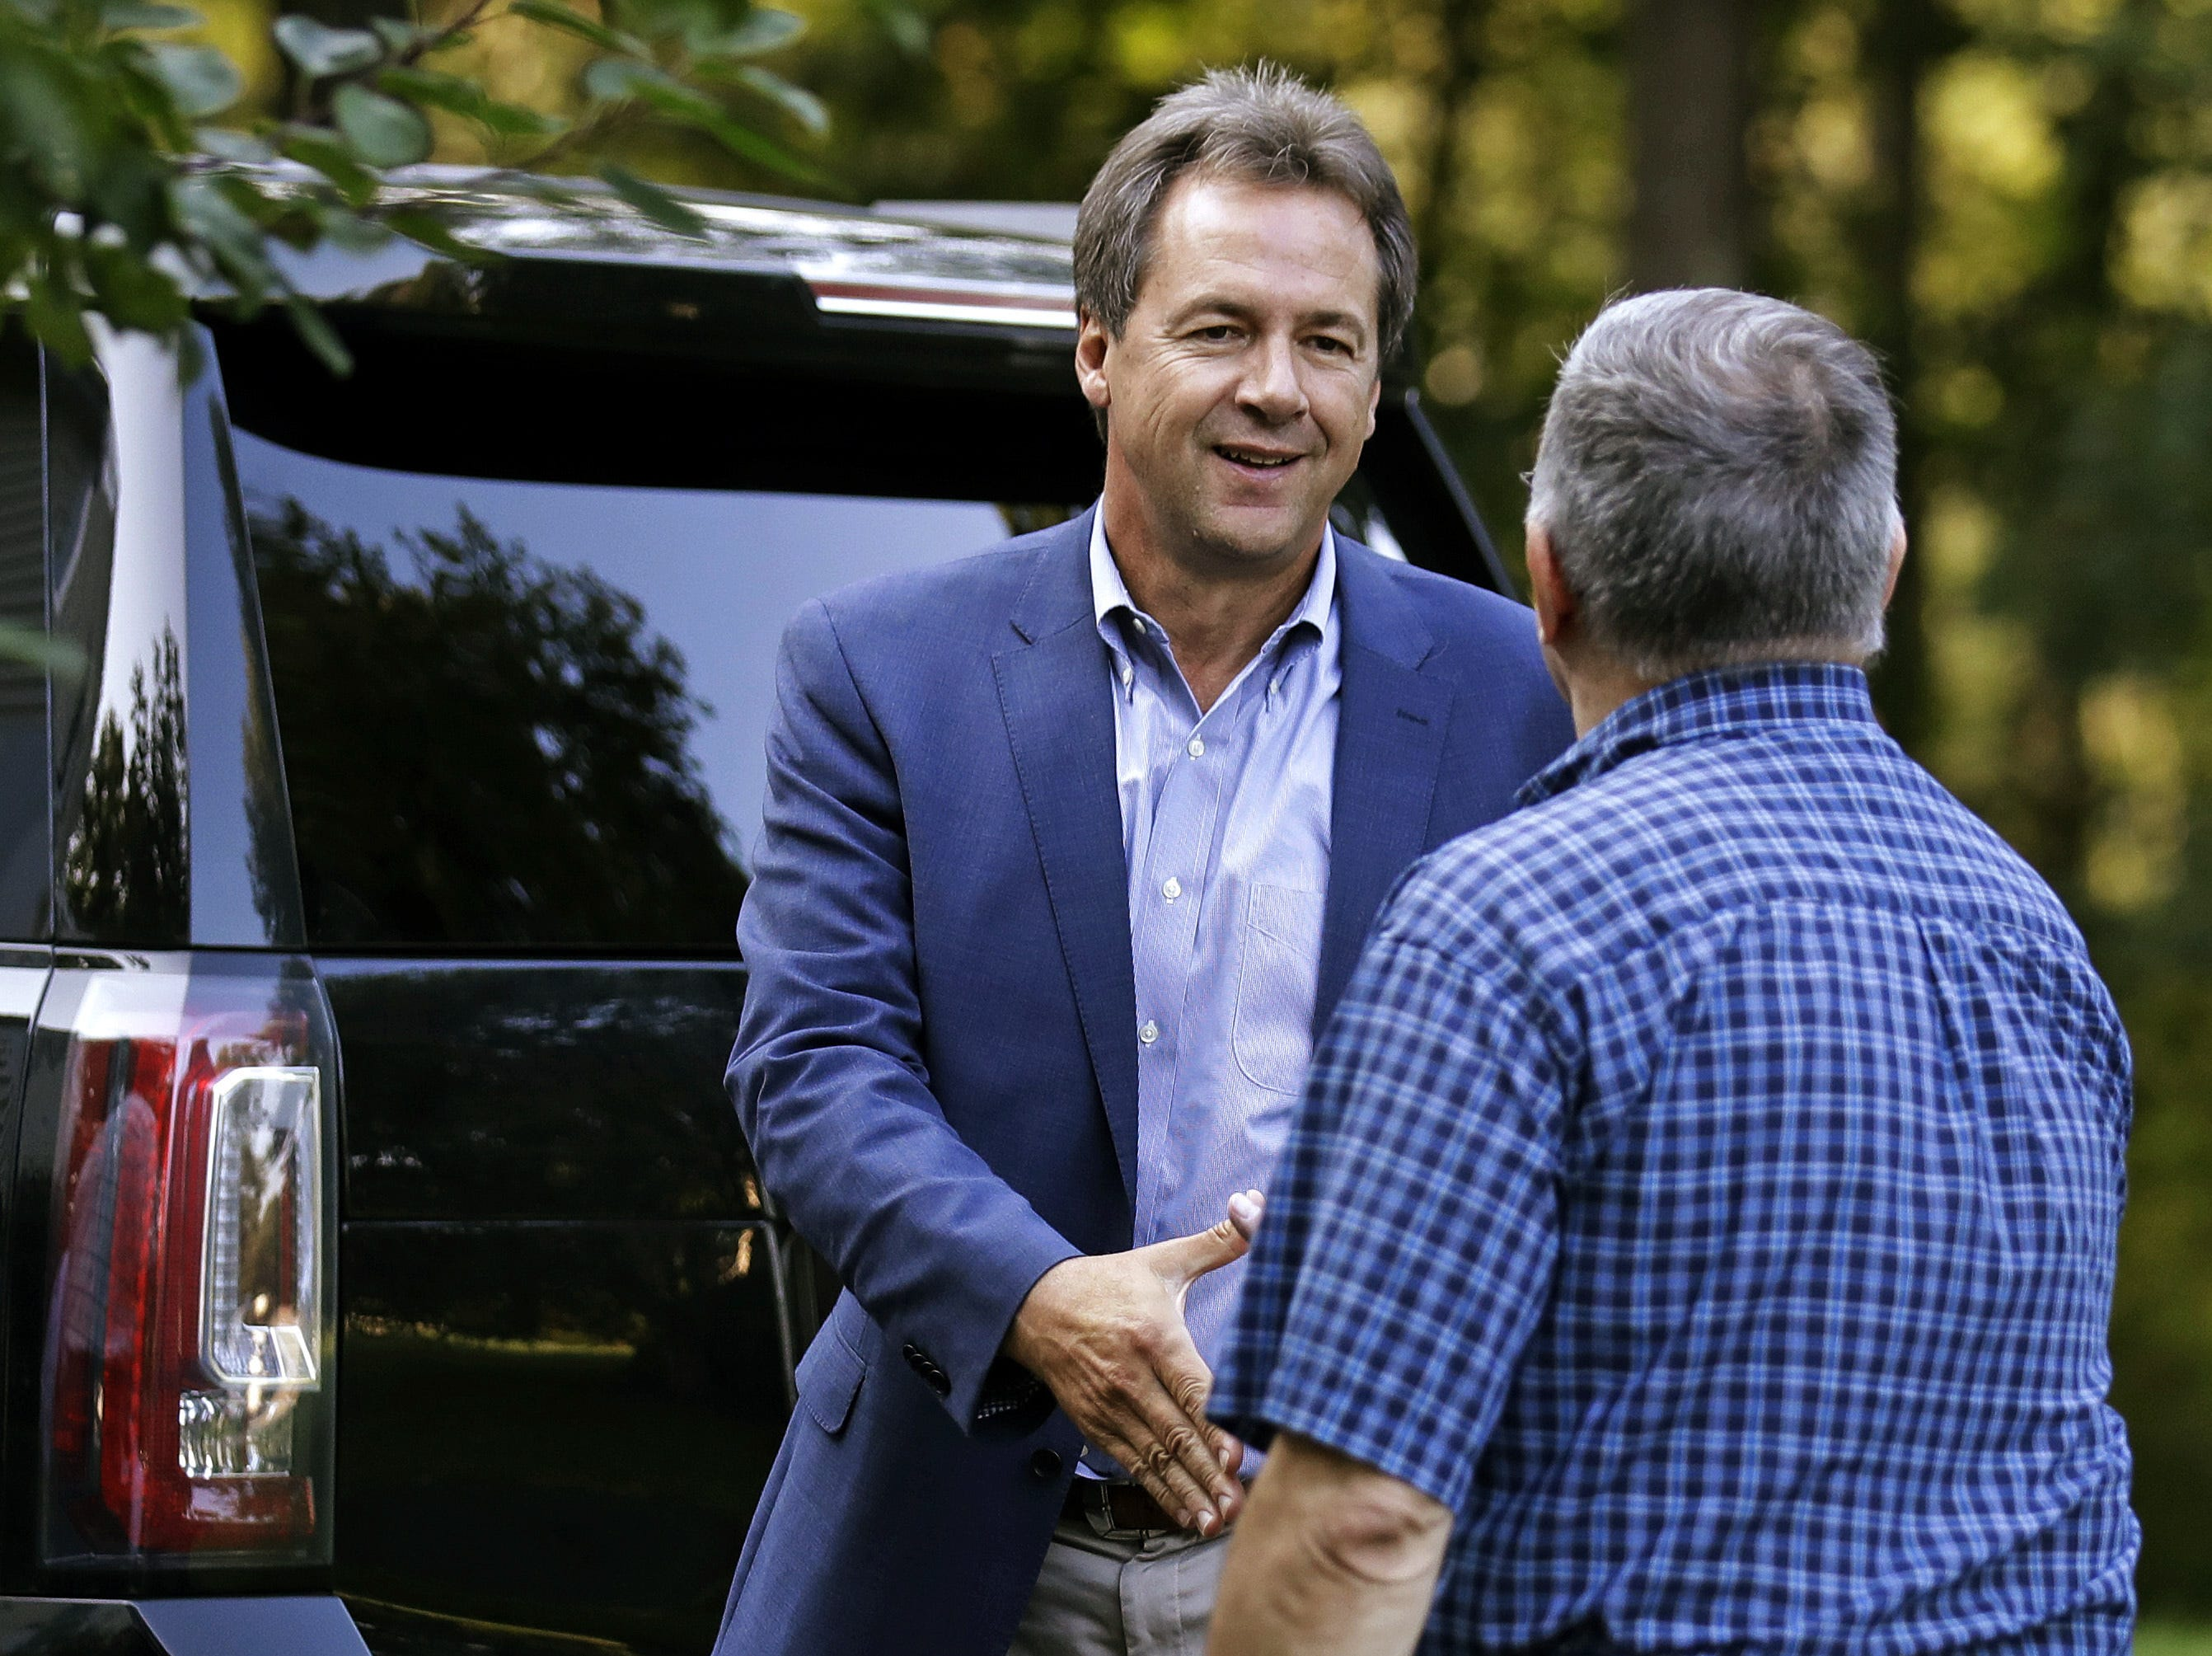 Gov. Steve Bullock, left, shakes hands with a guest as he arrives for a house party in Hampton, N.H., Friday.   Charles Krupa/AP Montana Gov. Steve Bullock, left, shakes hands with a guest as he arrives for a house party supporting Democratic candidates in Hampton, N.H., Friday, Aug. 24, 2018. Bullock is visiting New Hampshire this weekend as he explores a possible 2020 presidential bid. (AP Photo/Charles Krupa)